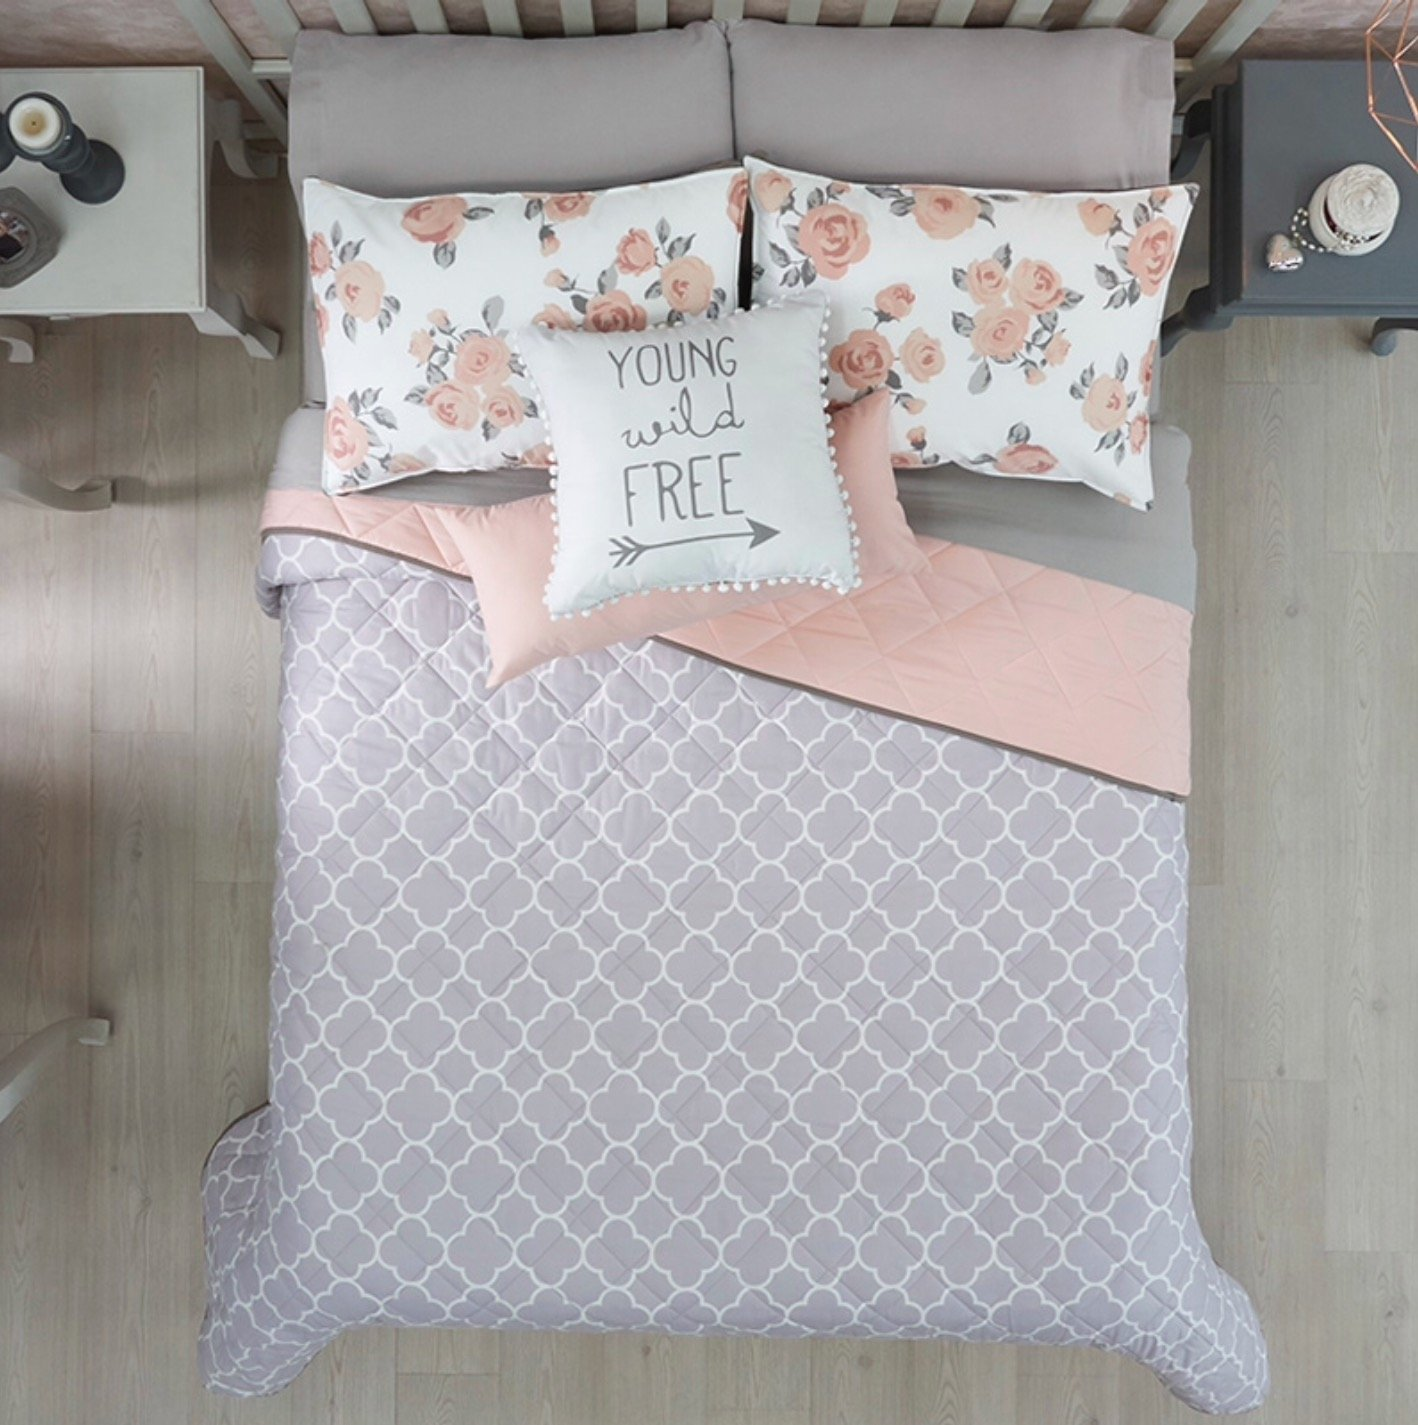 LIMITED EDITION FREE PINK/GRAY TEENS GIRLS CUTE COLLECTION REVERSIBLE COMFORTER SET AND SHEET SET 6 PCS TWIN SIZE